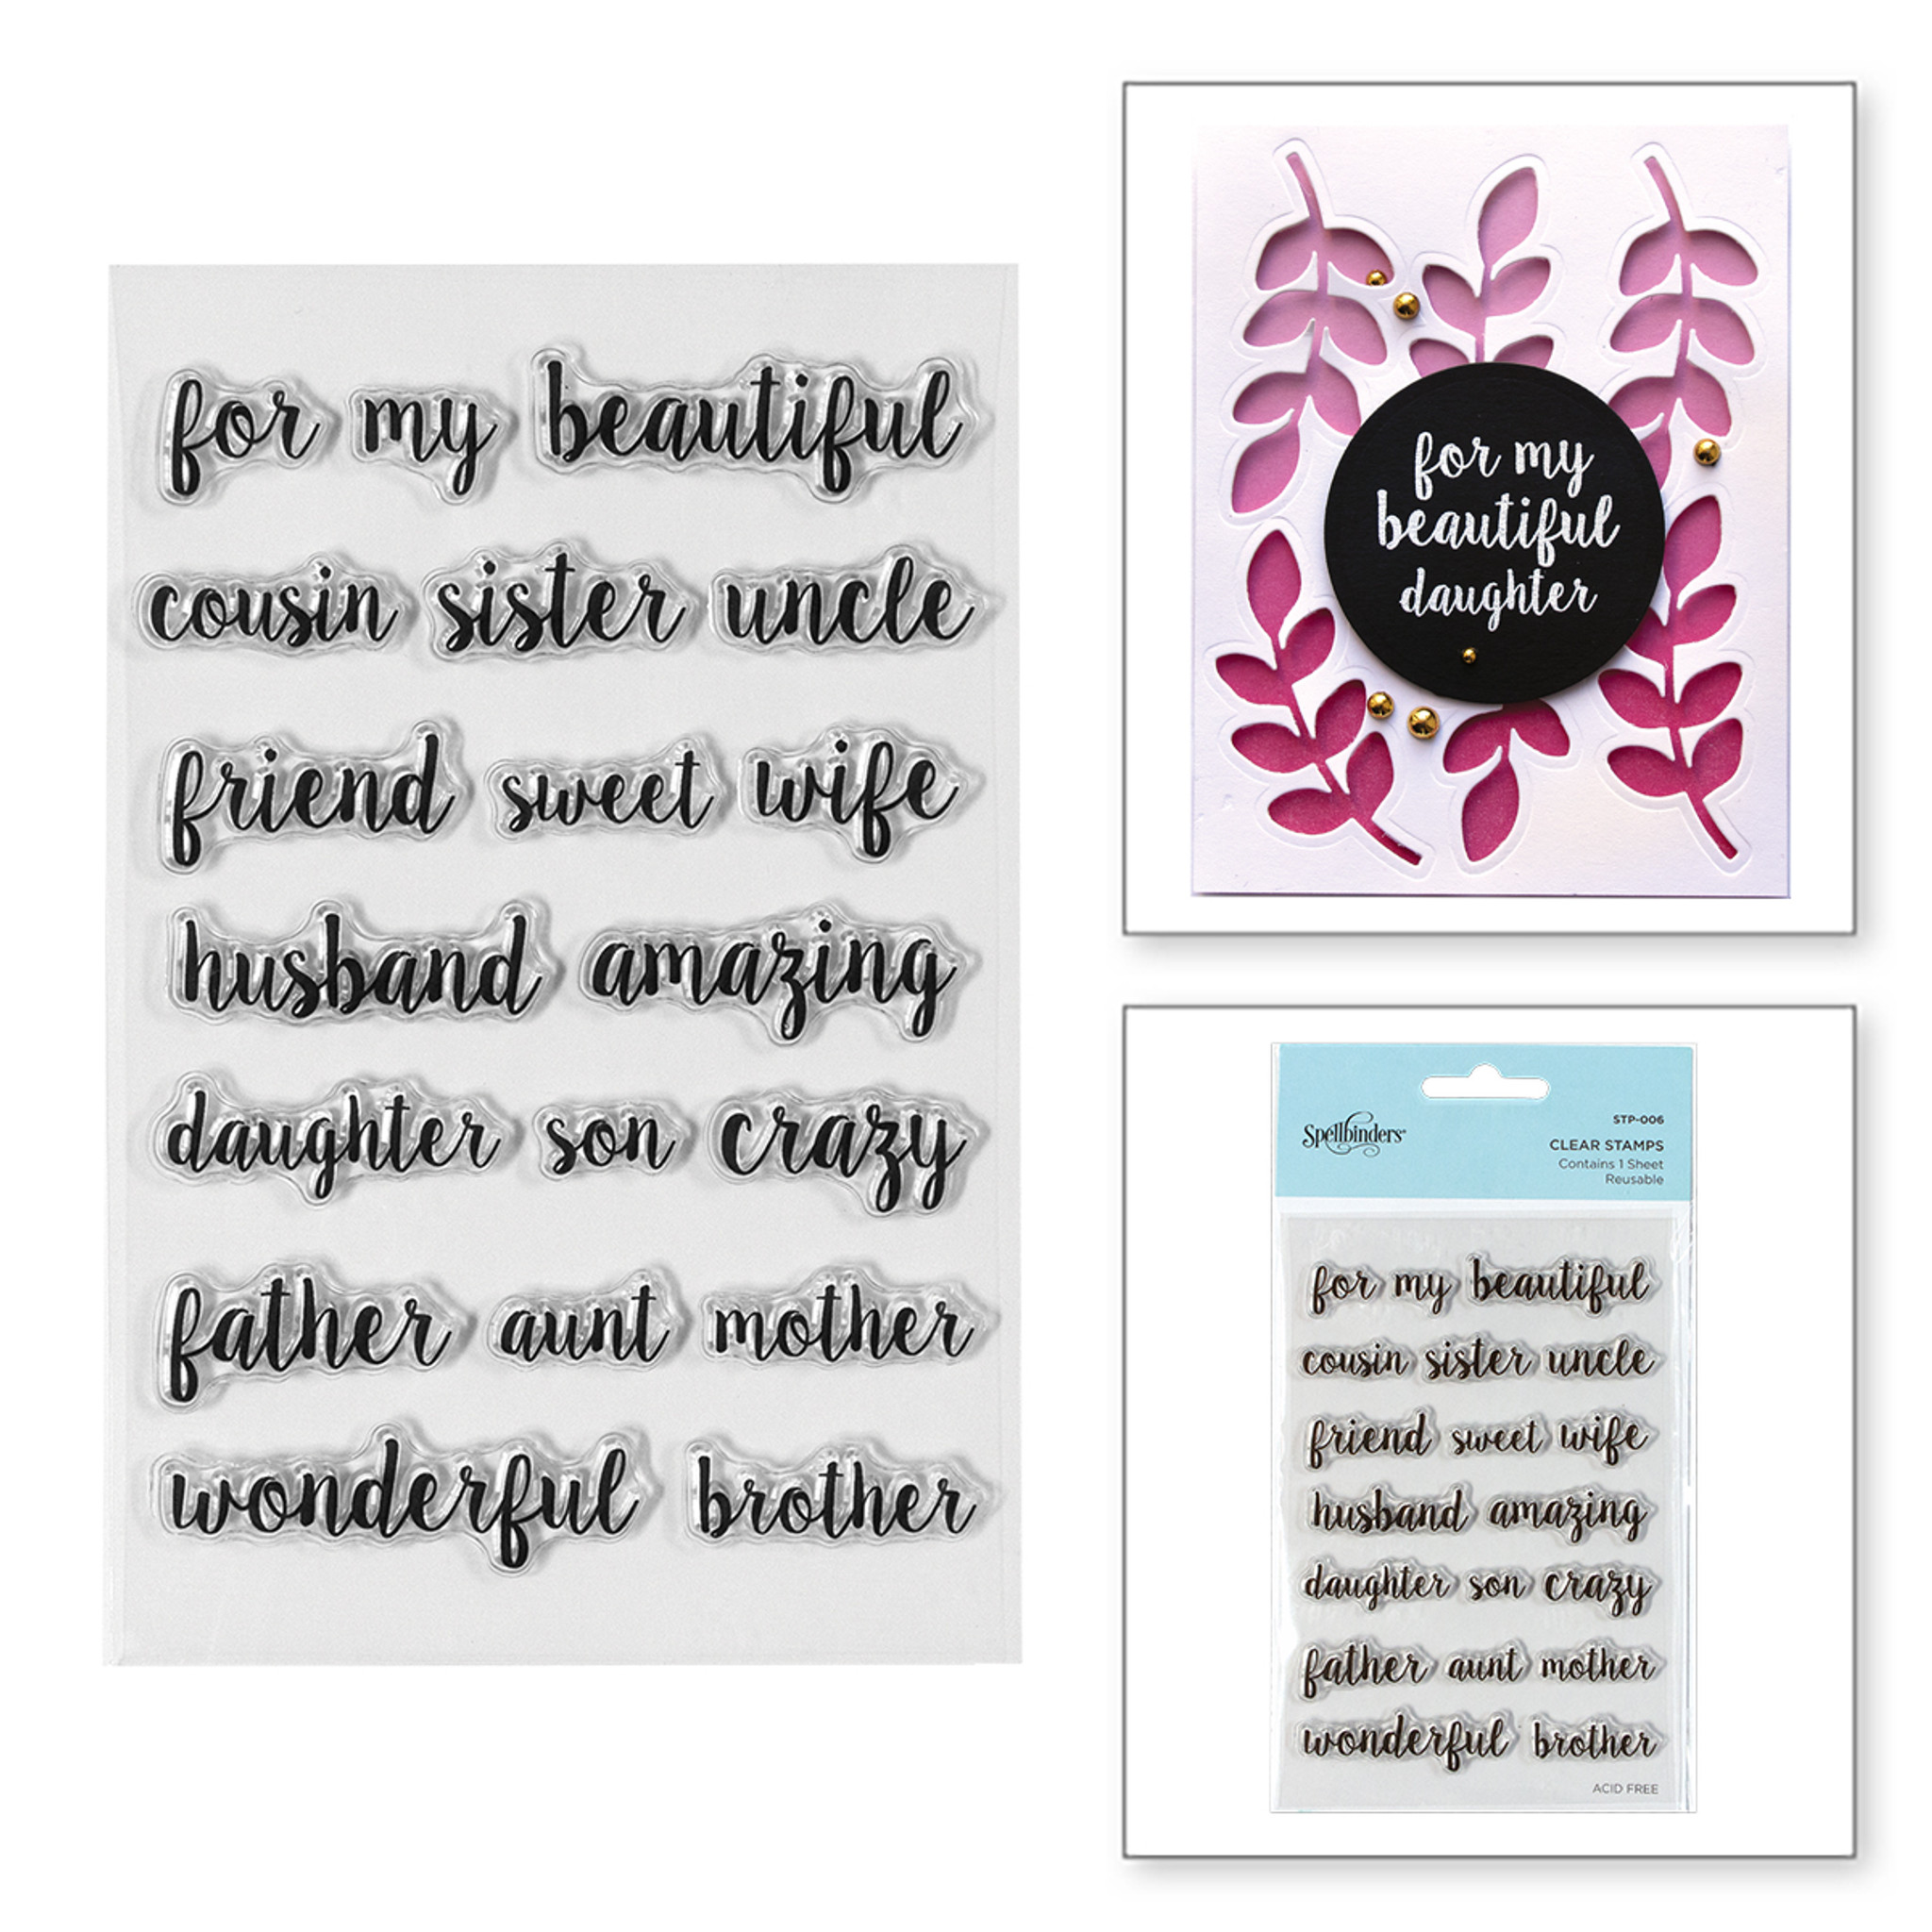 New Spellbinders Clear Stamps Happy Sentiments  STP-002